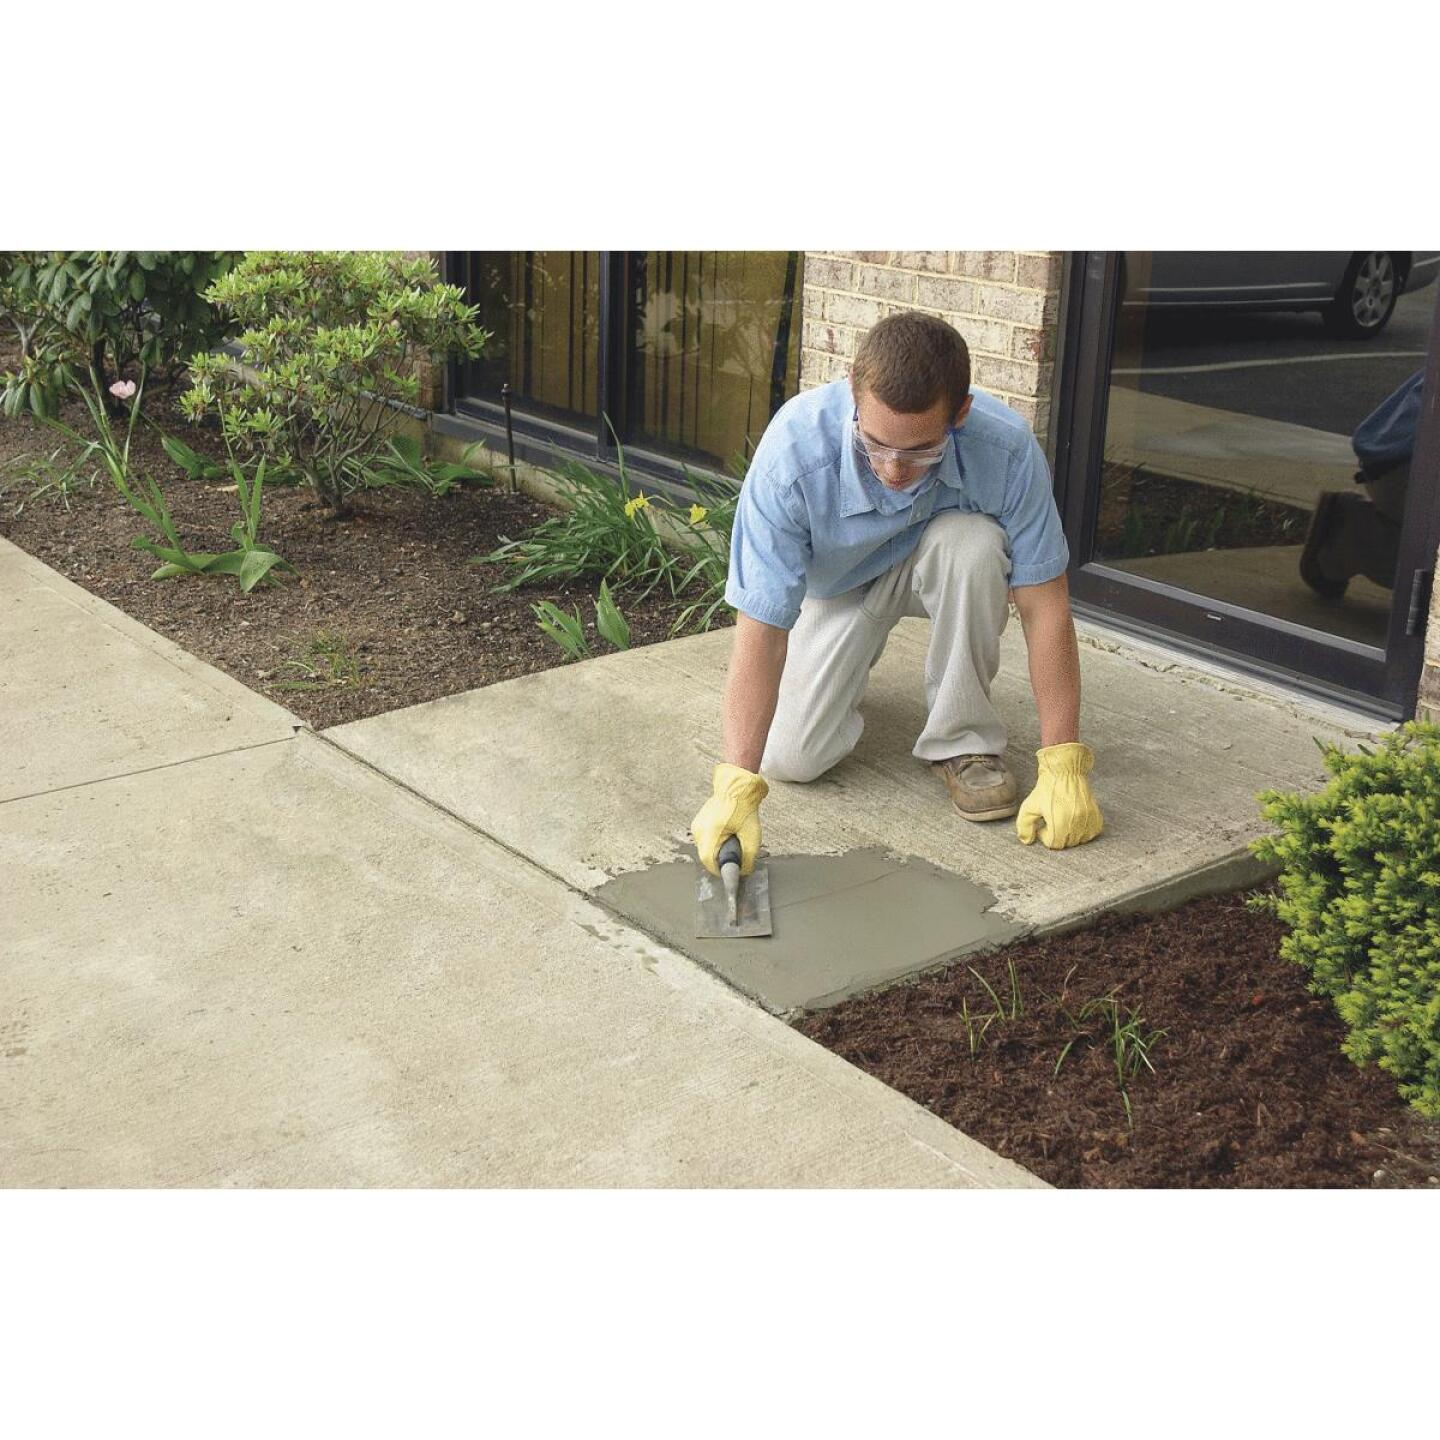 Quikrete 10 Lb Ready-to-Use, Gray Concrete Patch Image 2